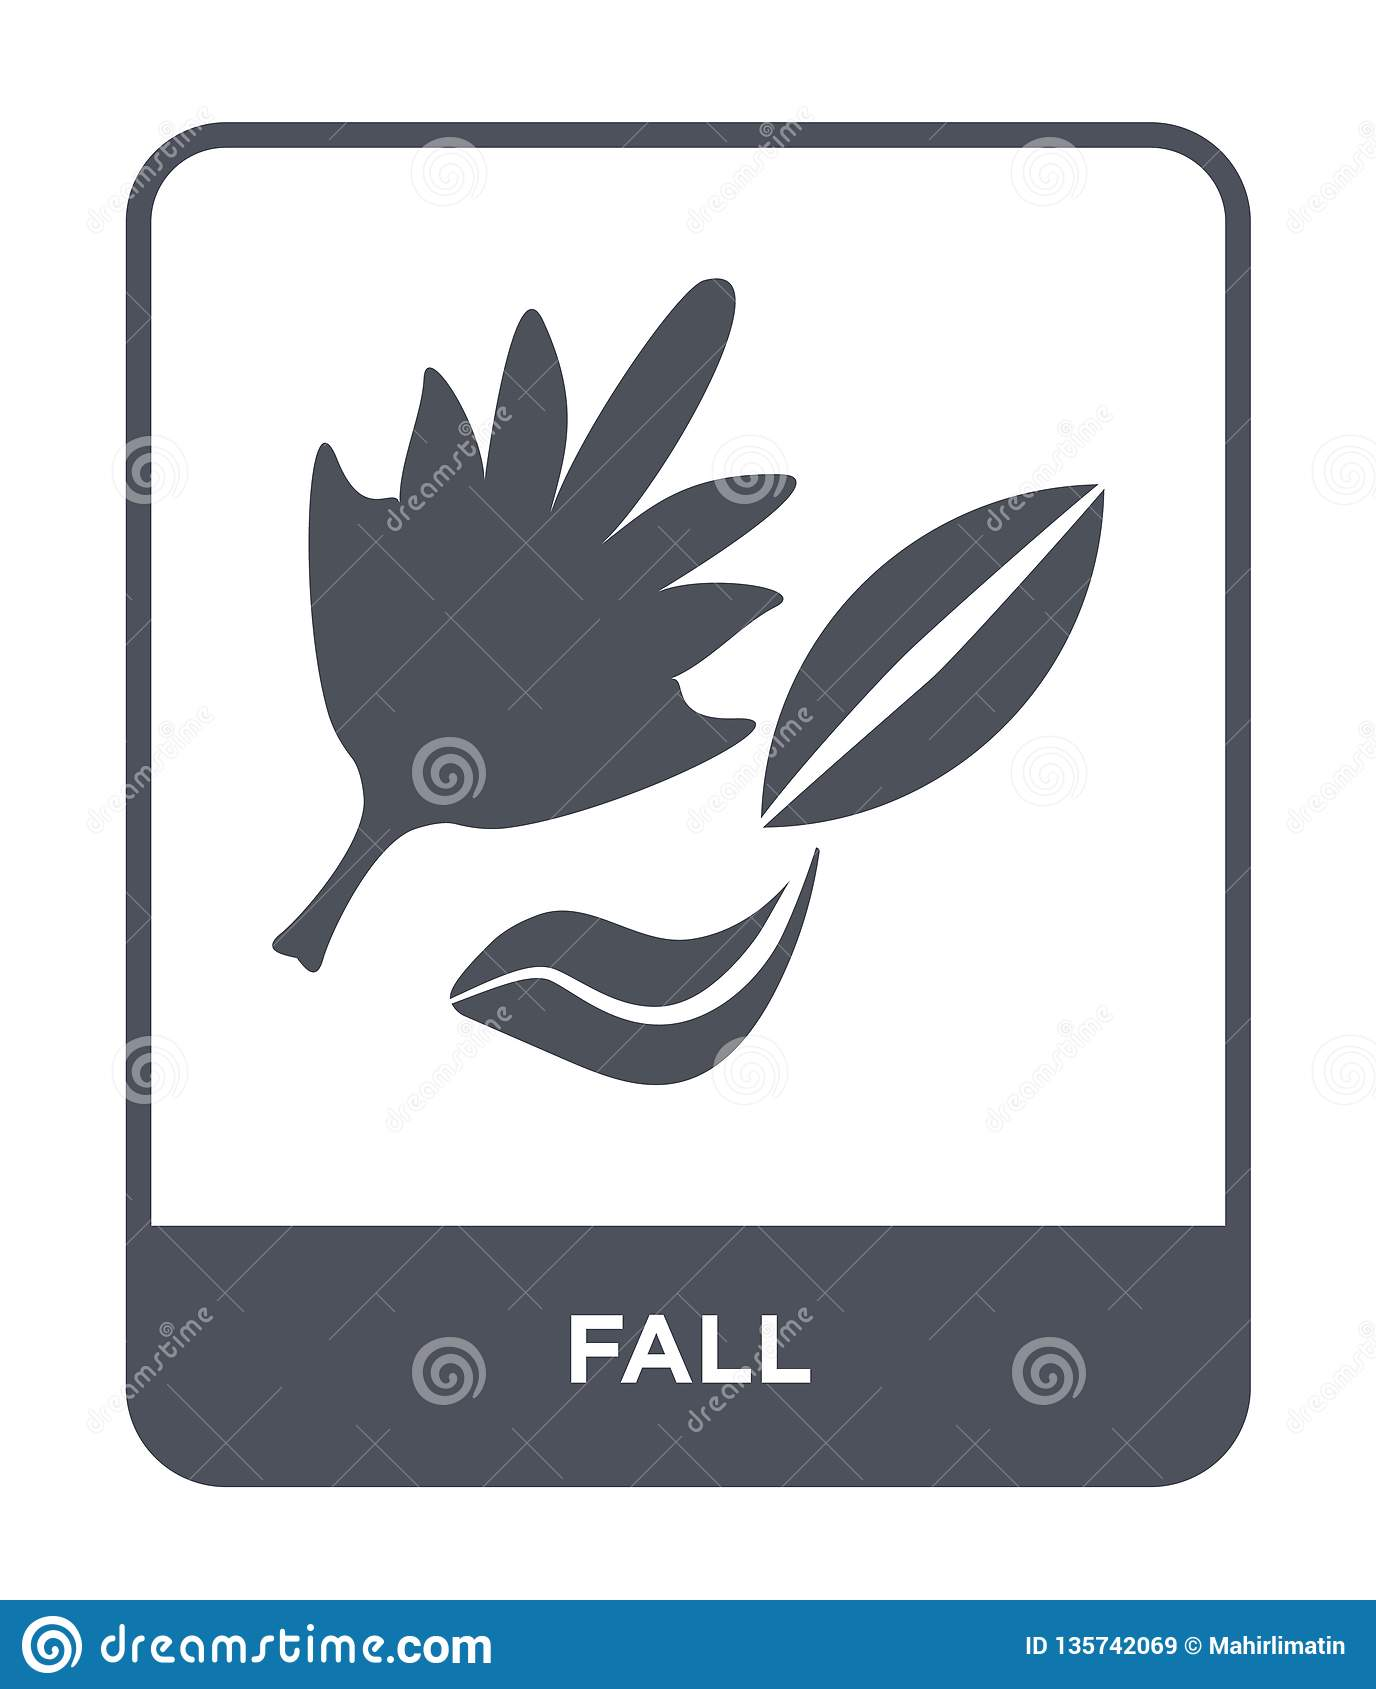 fall icon in trendy design style. fall icon isolated on white background. fall vector icon simple and modern flat symbol for web